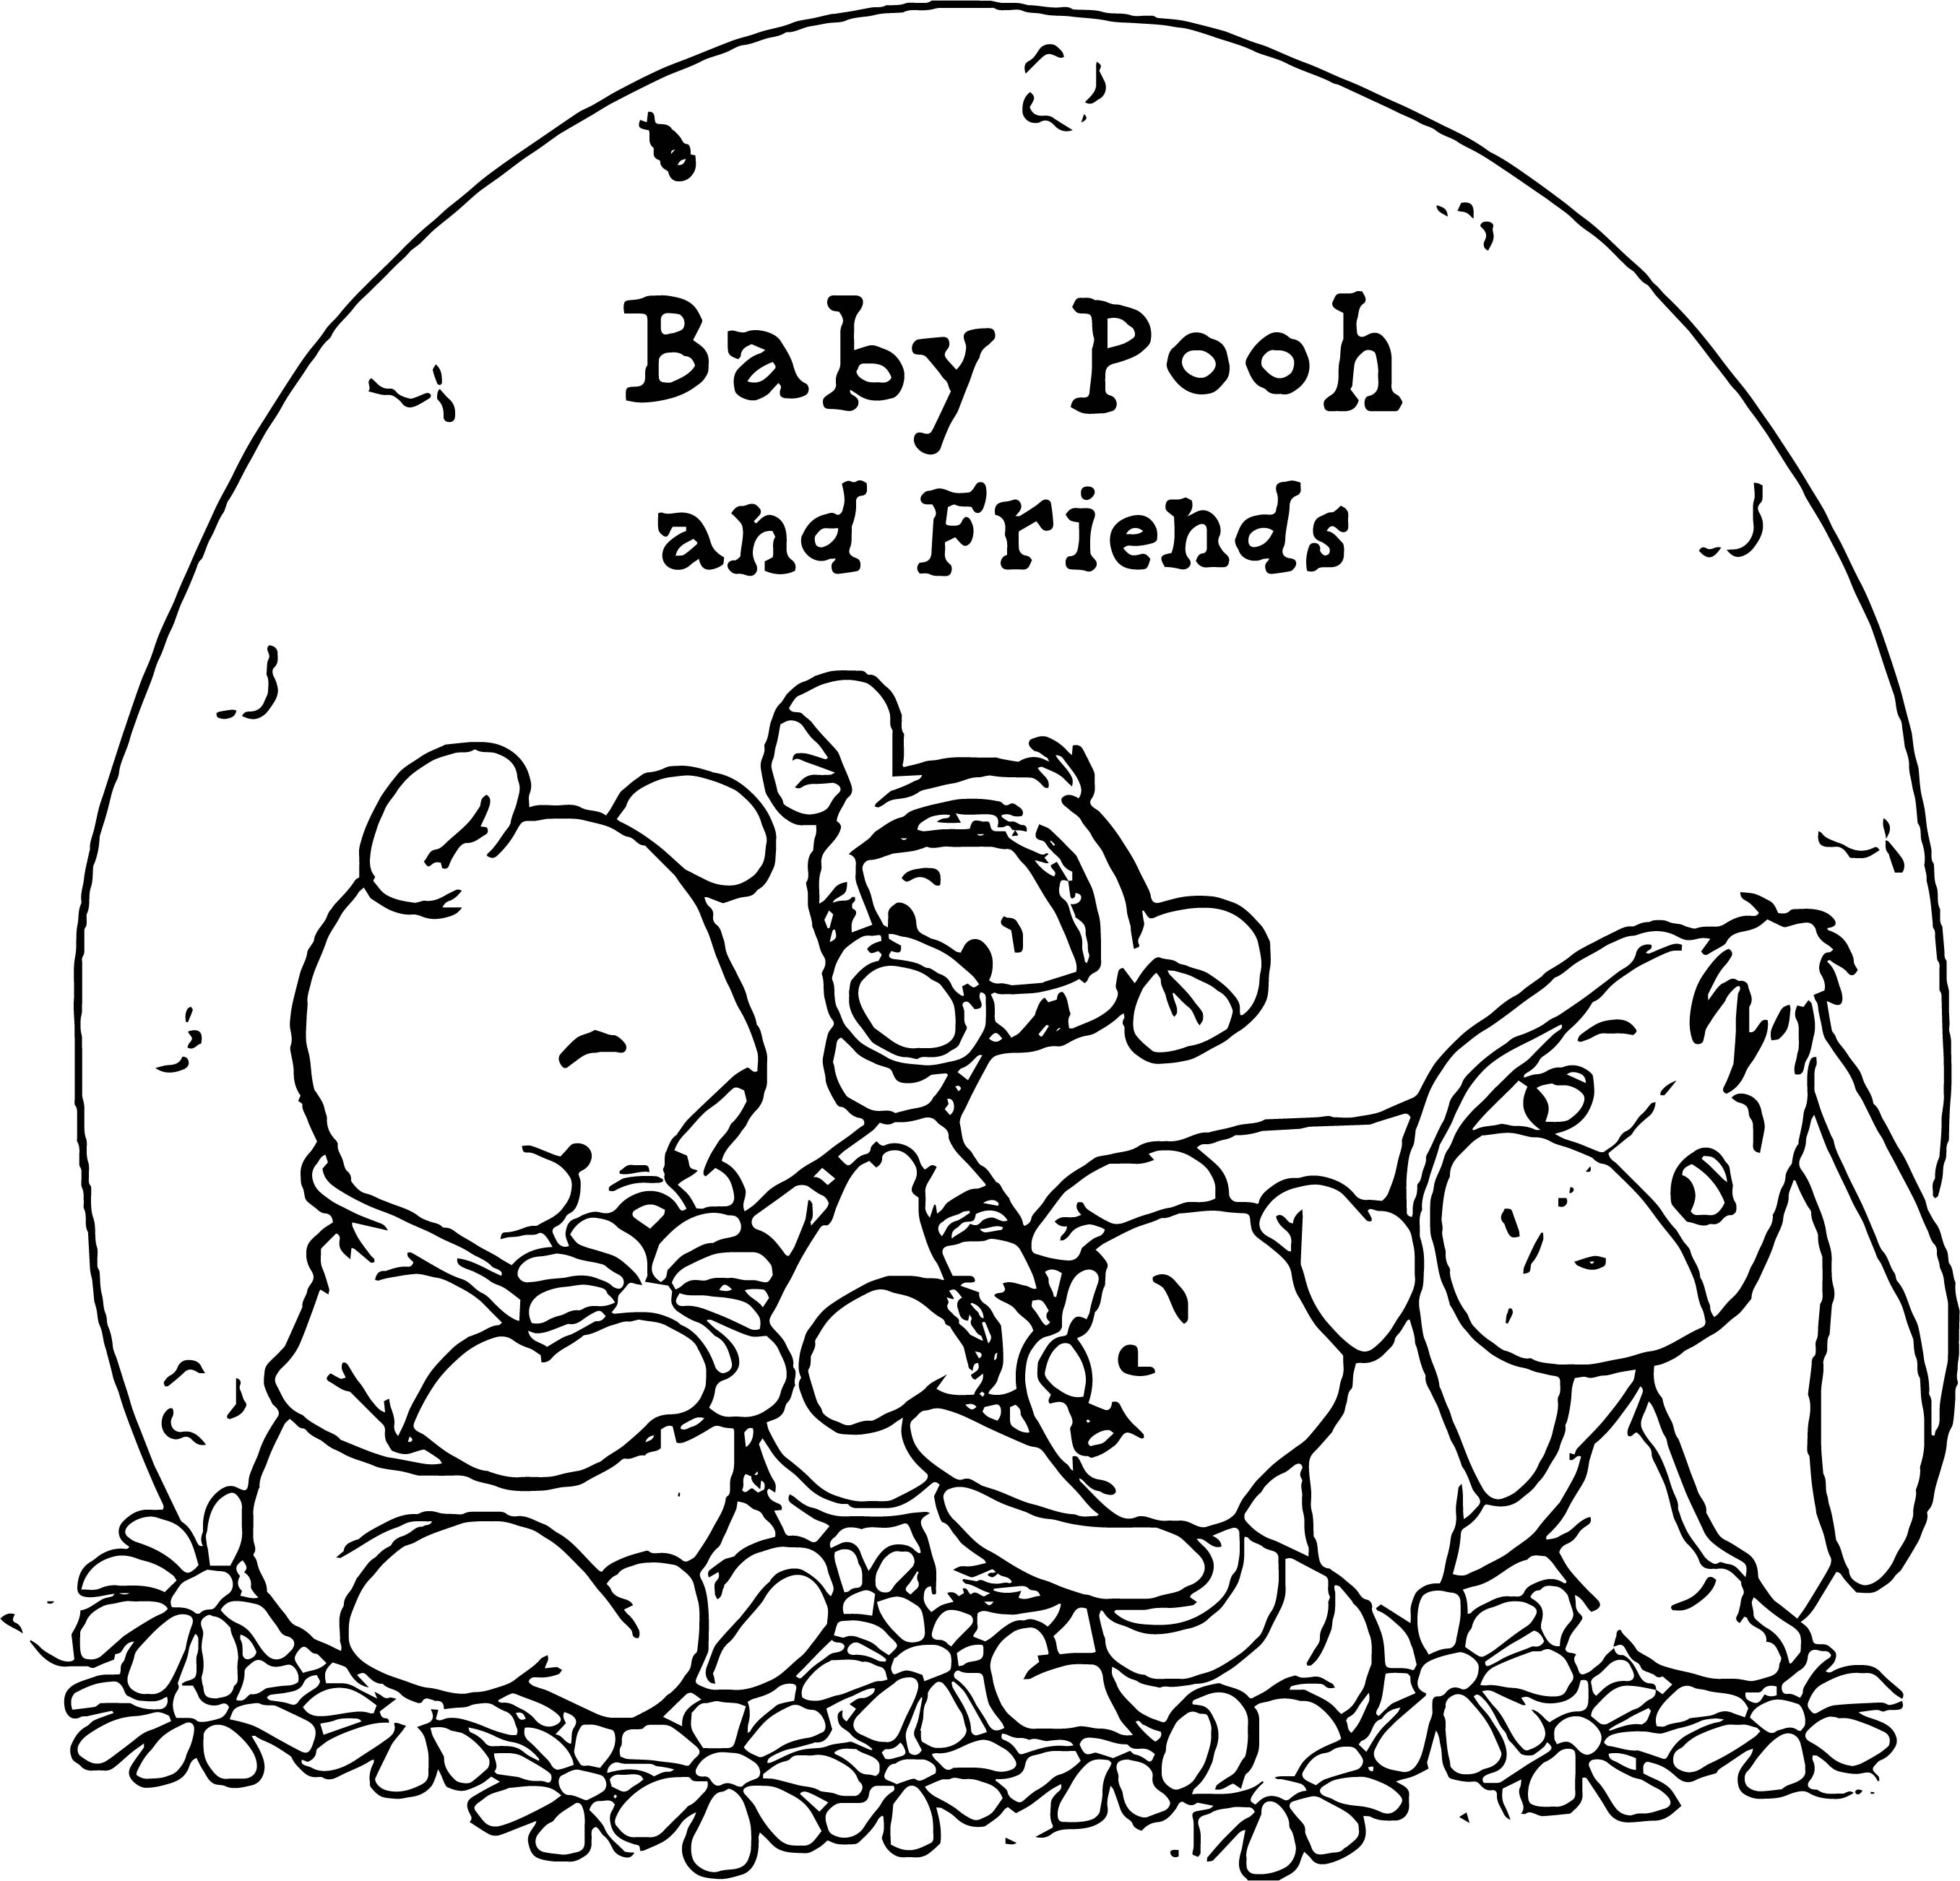 Pooh Wallpaper Baby Pooh And His Friends Coloring Page